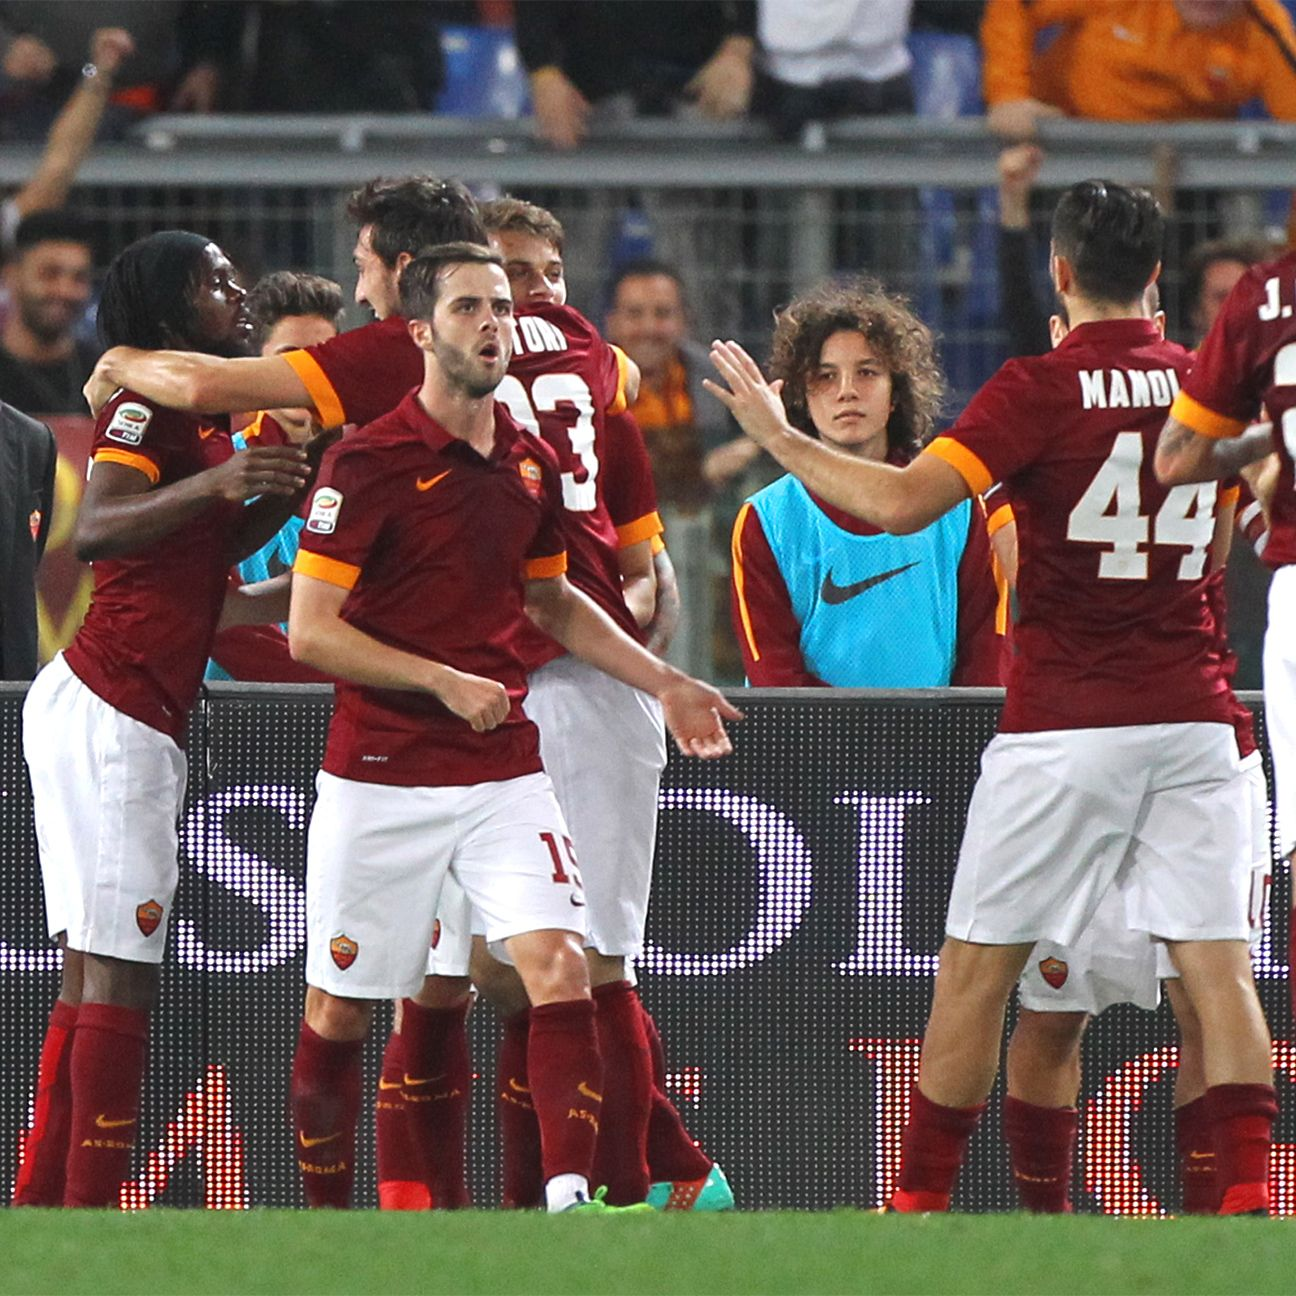 Roma got back on the winning path following their midweek Champions League heartbreak in Russia.